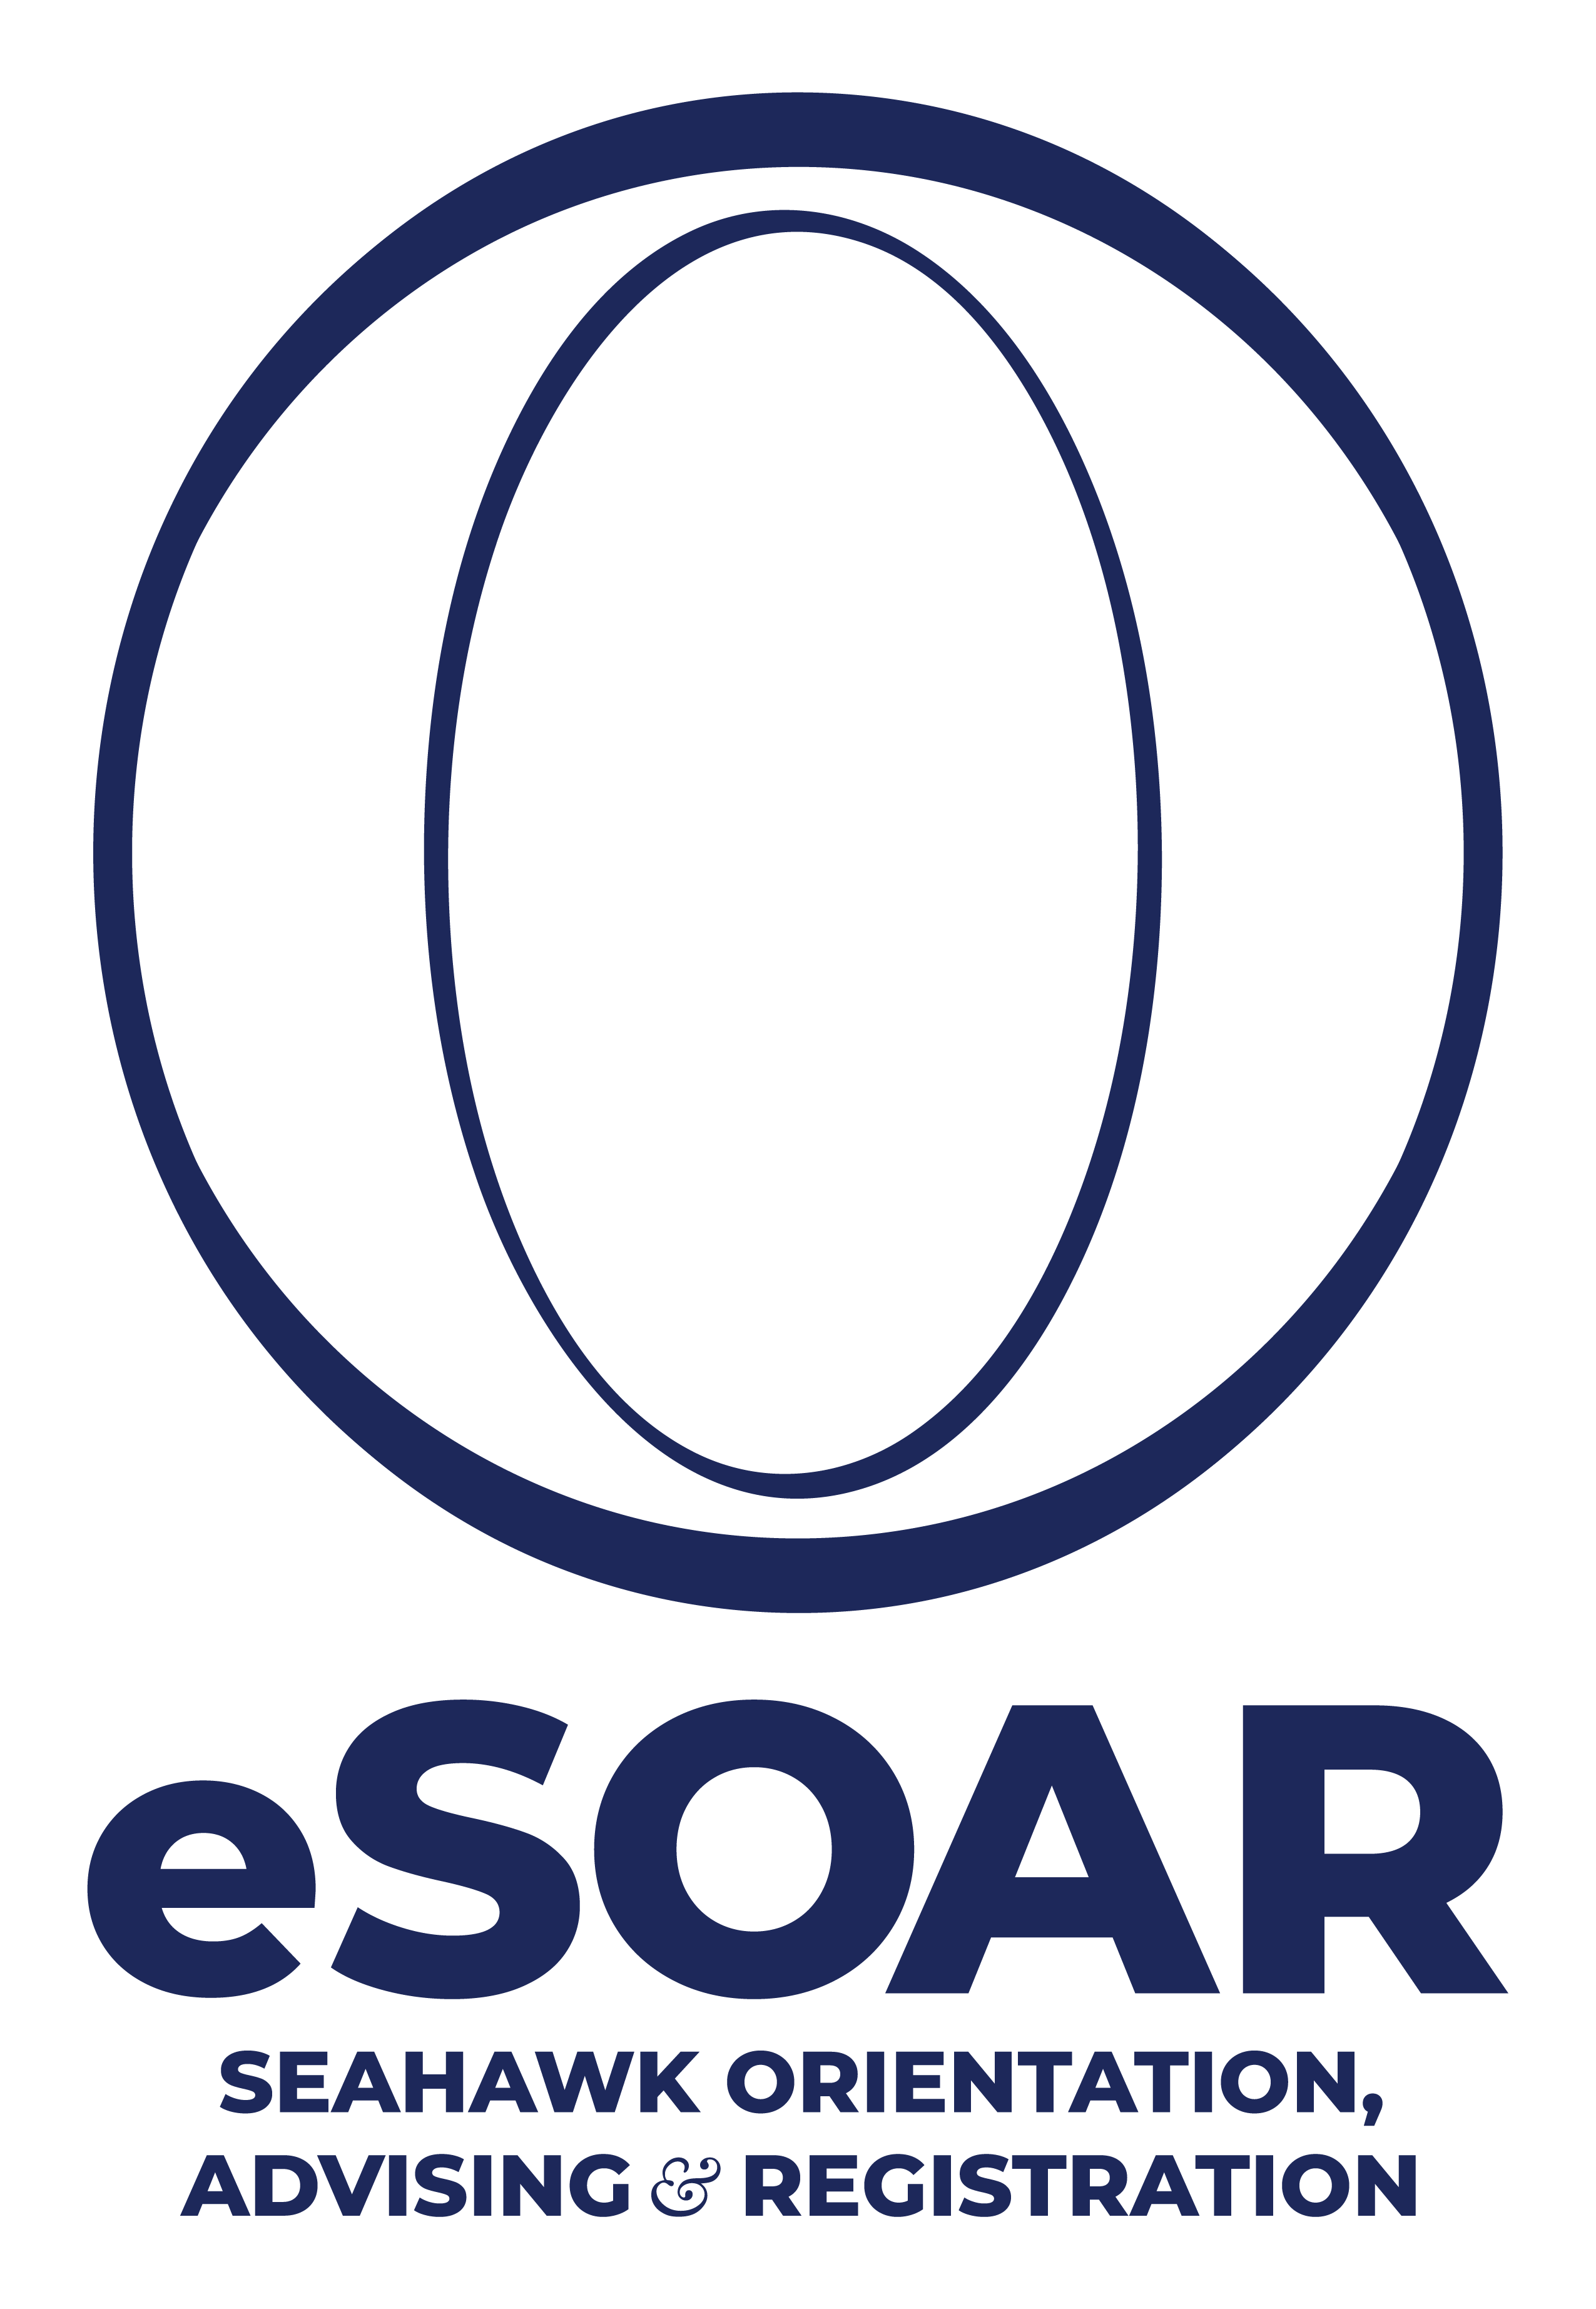 eSOAR, Seahawk Orientation, Advising & Registration